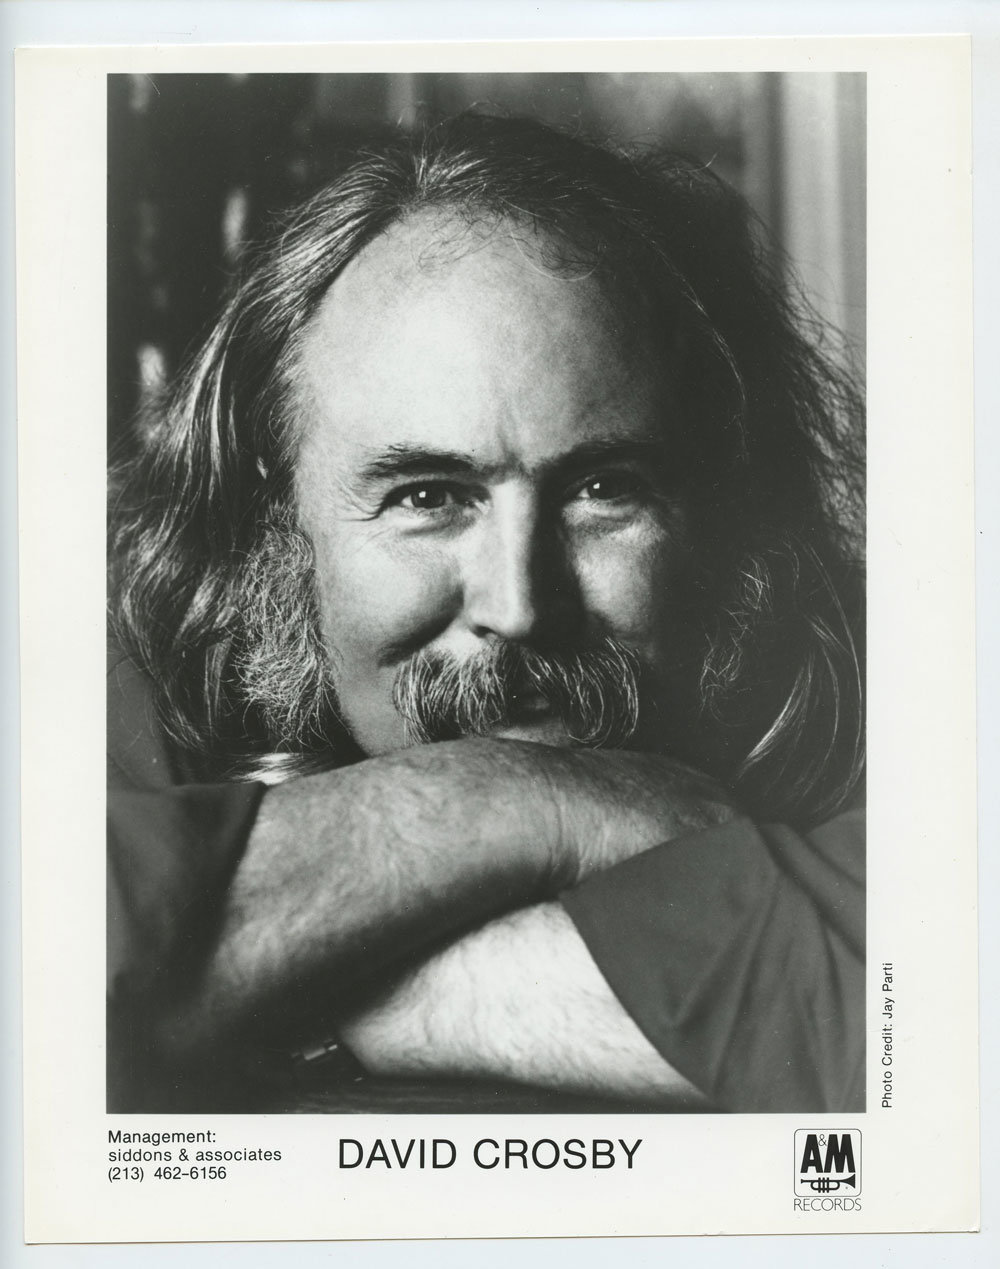 David Crosby Photo 1980s Publicity Promo A&M Records